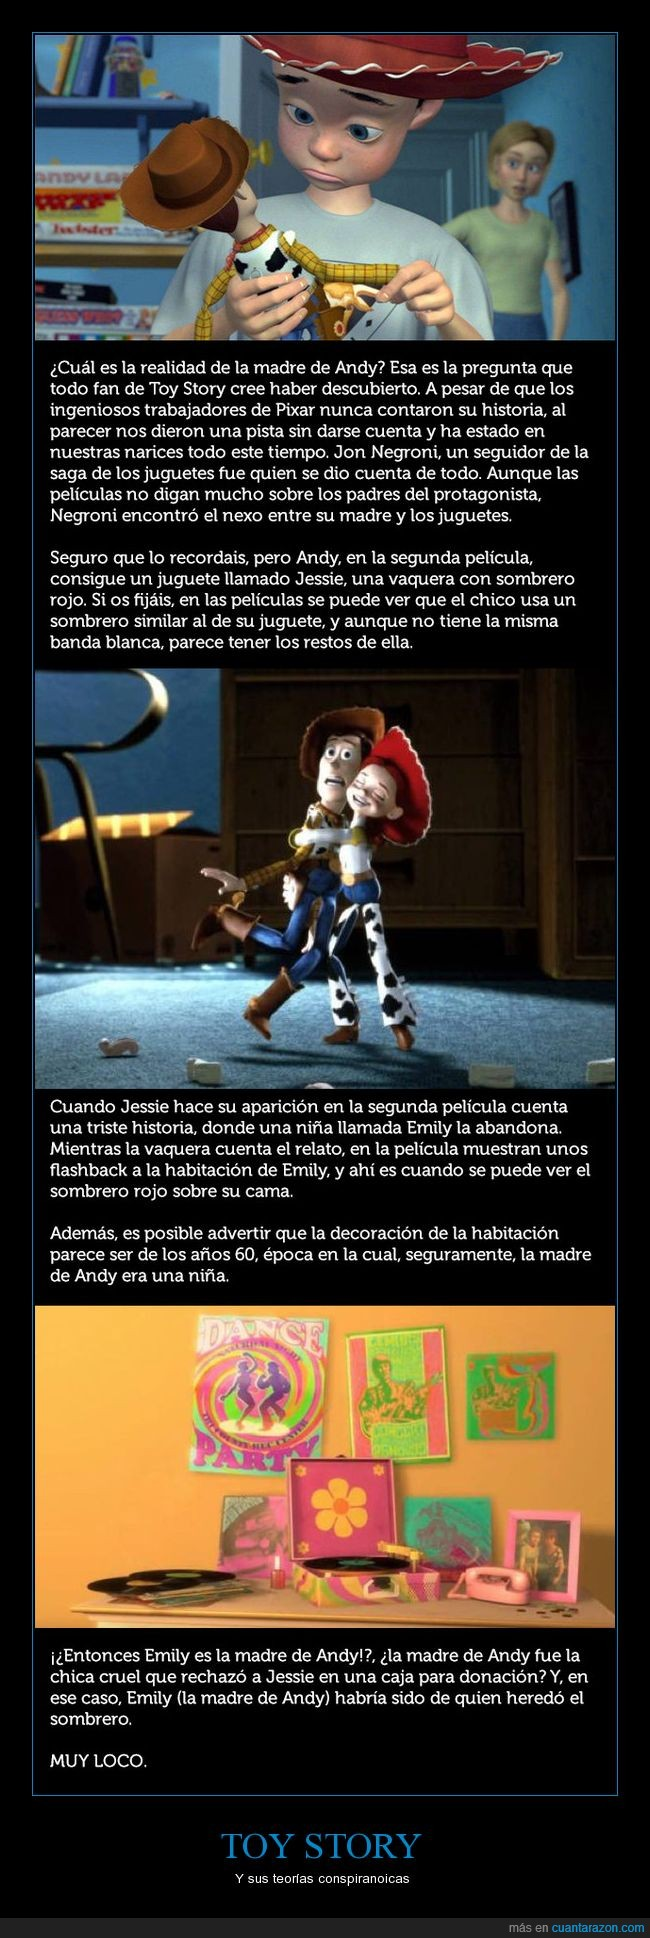 andy,madre,toy story